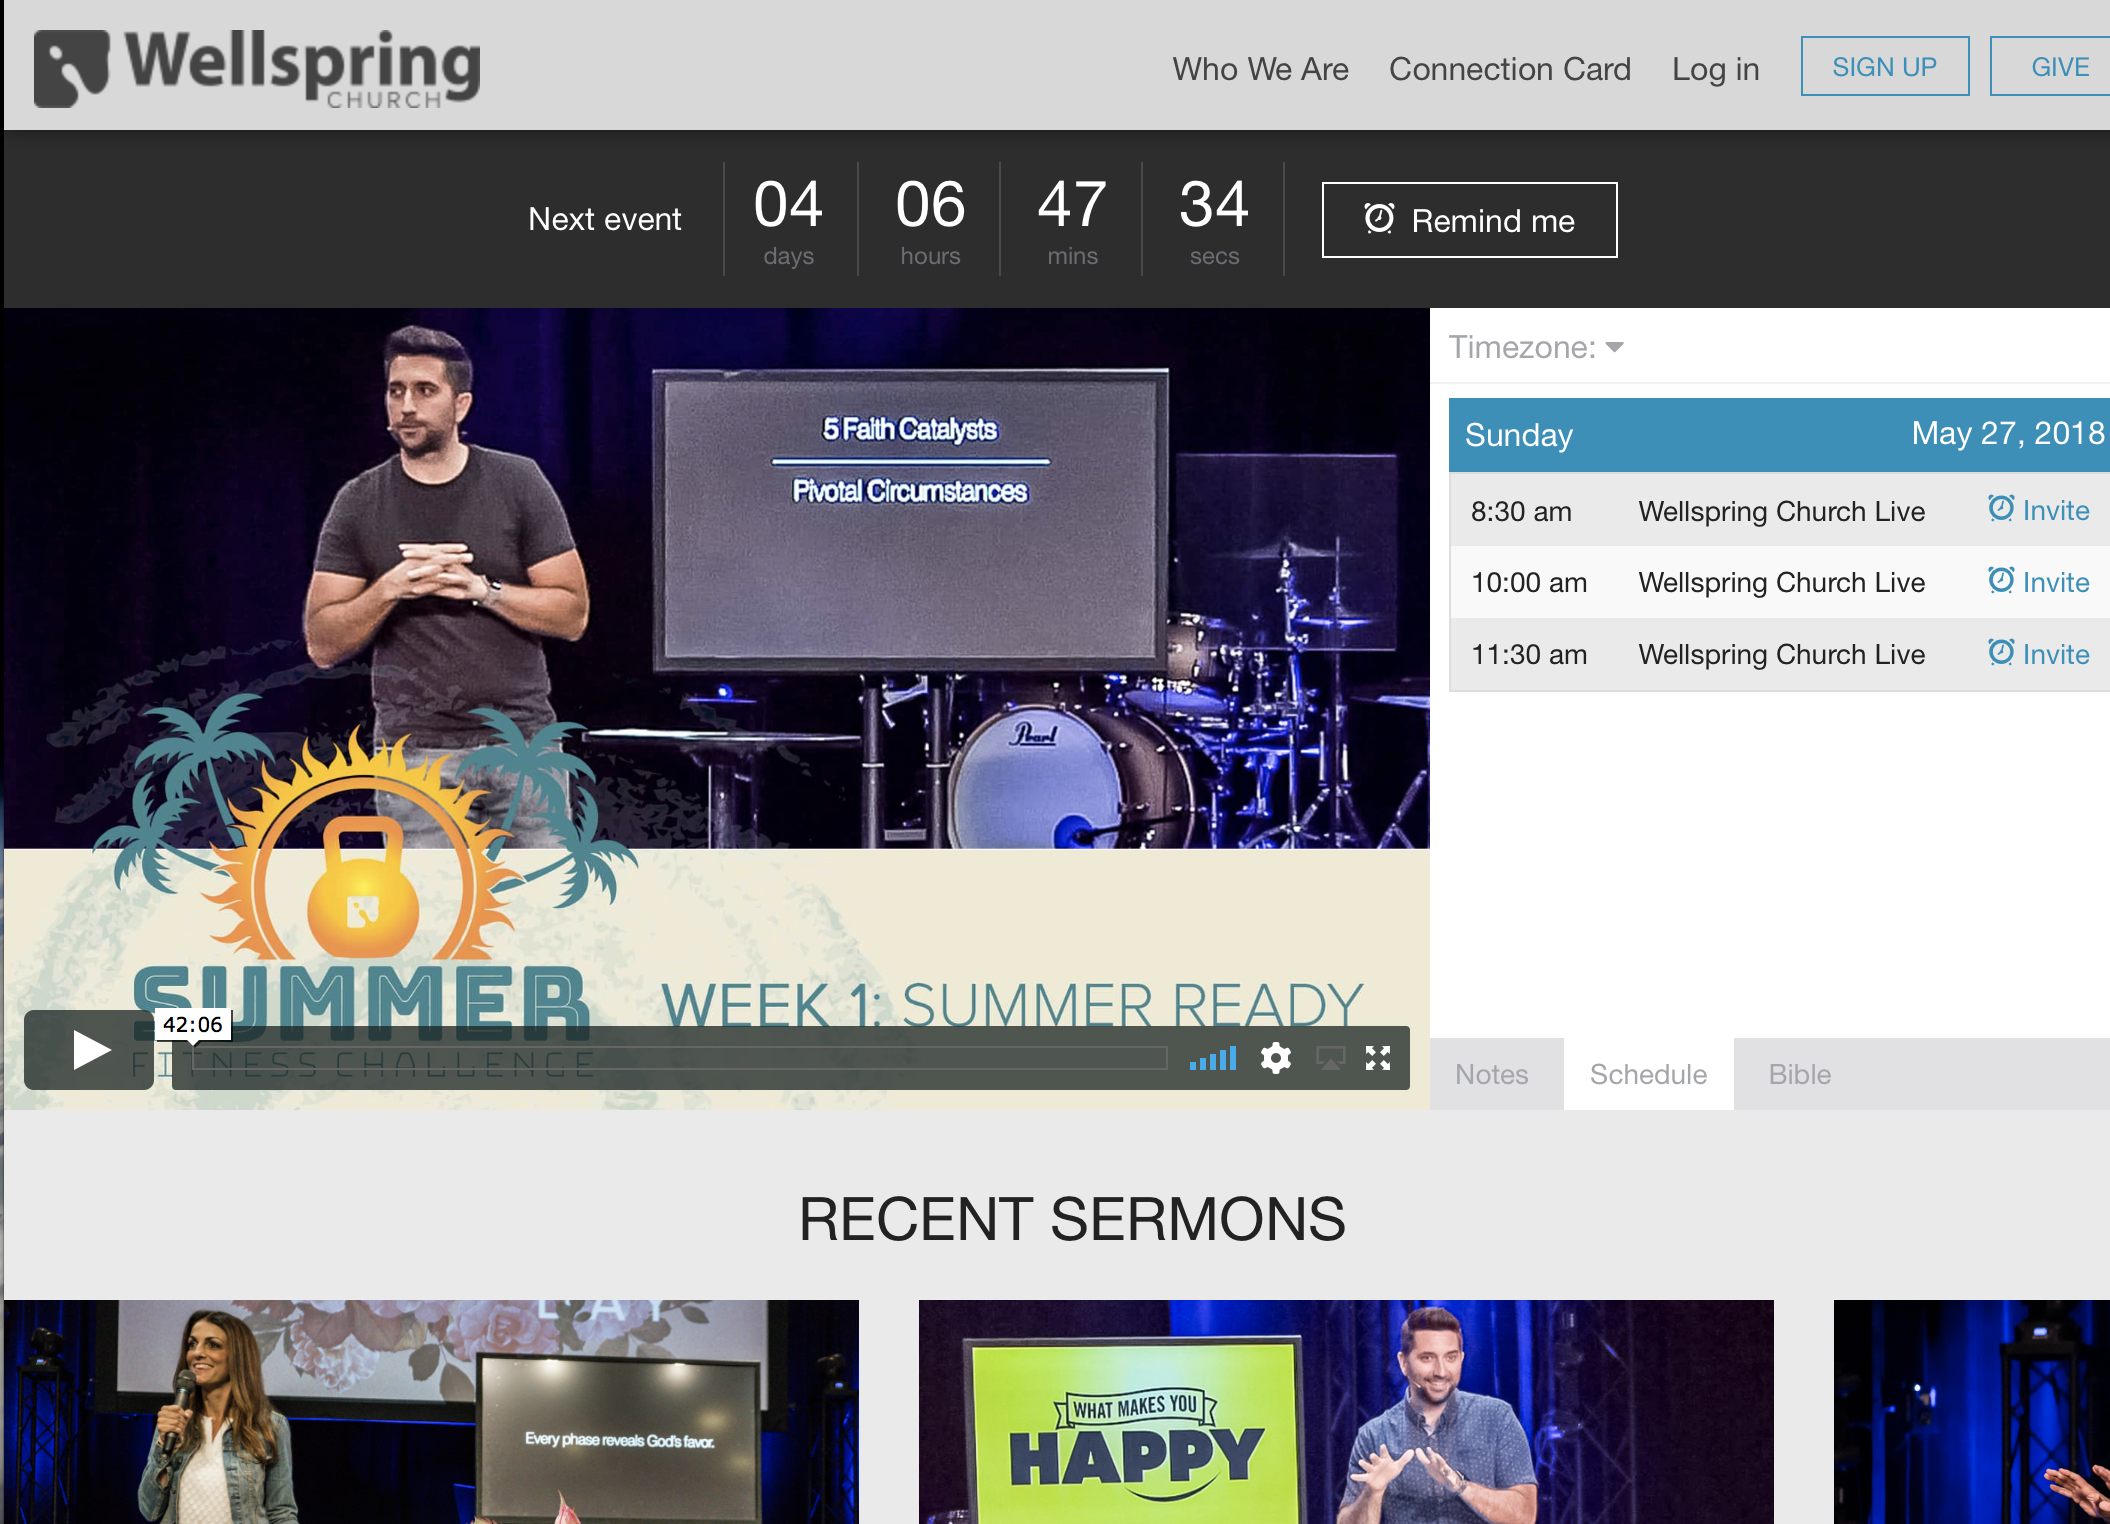 Video Production & Live Streaming - wellspringlive.com . Click on the image above to go to the website that hosts the live stream on Sunday mornings.